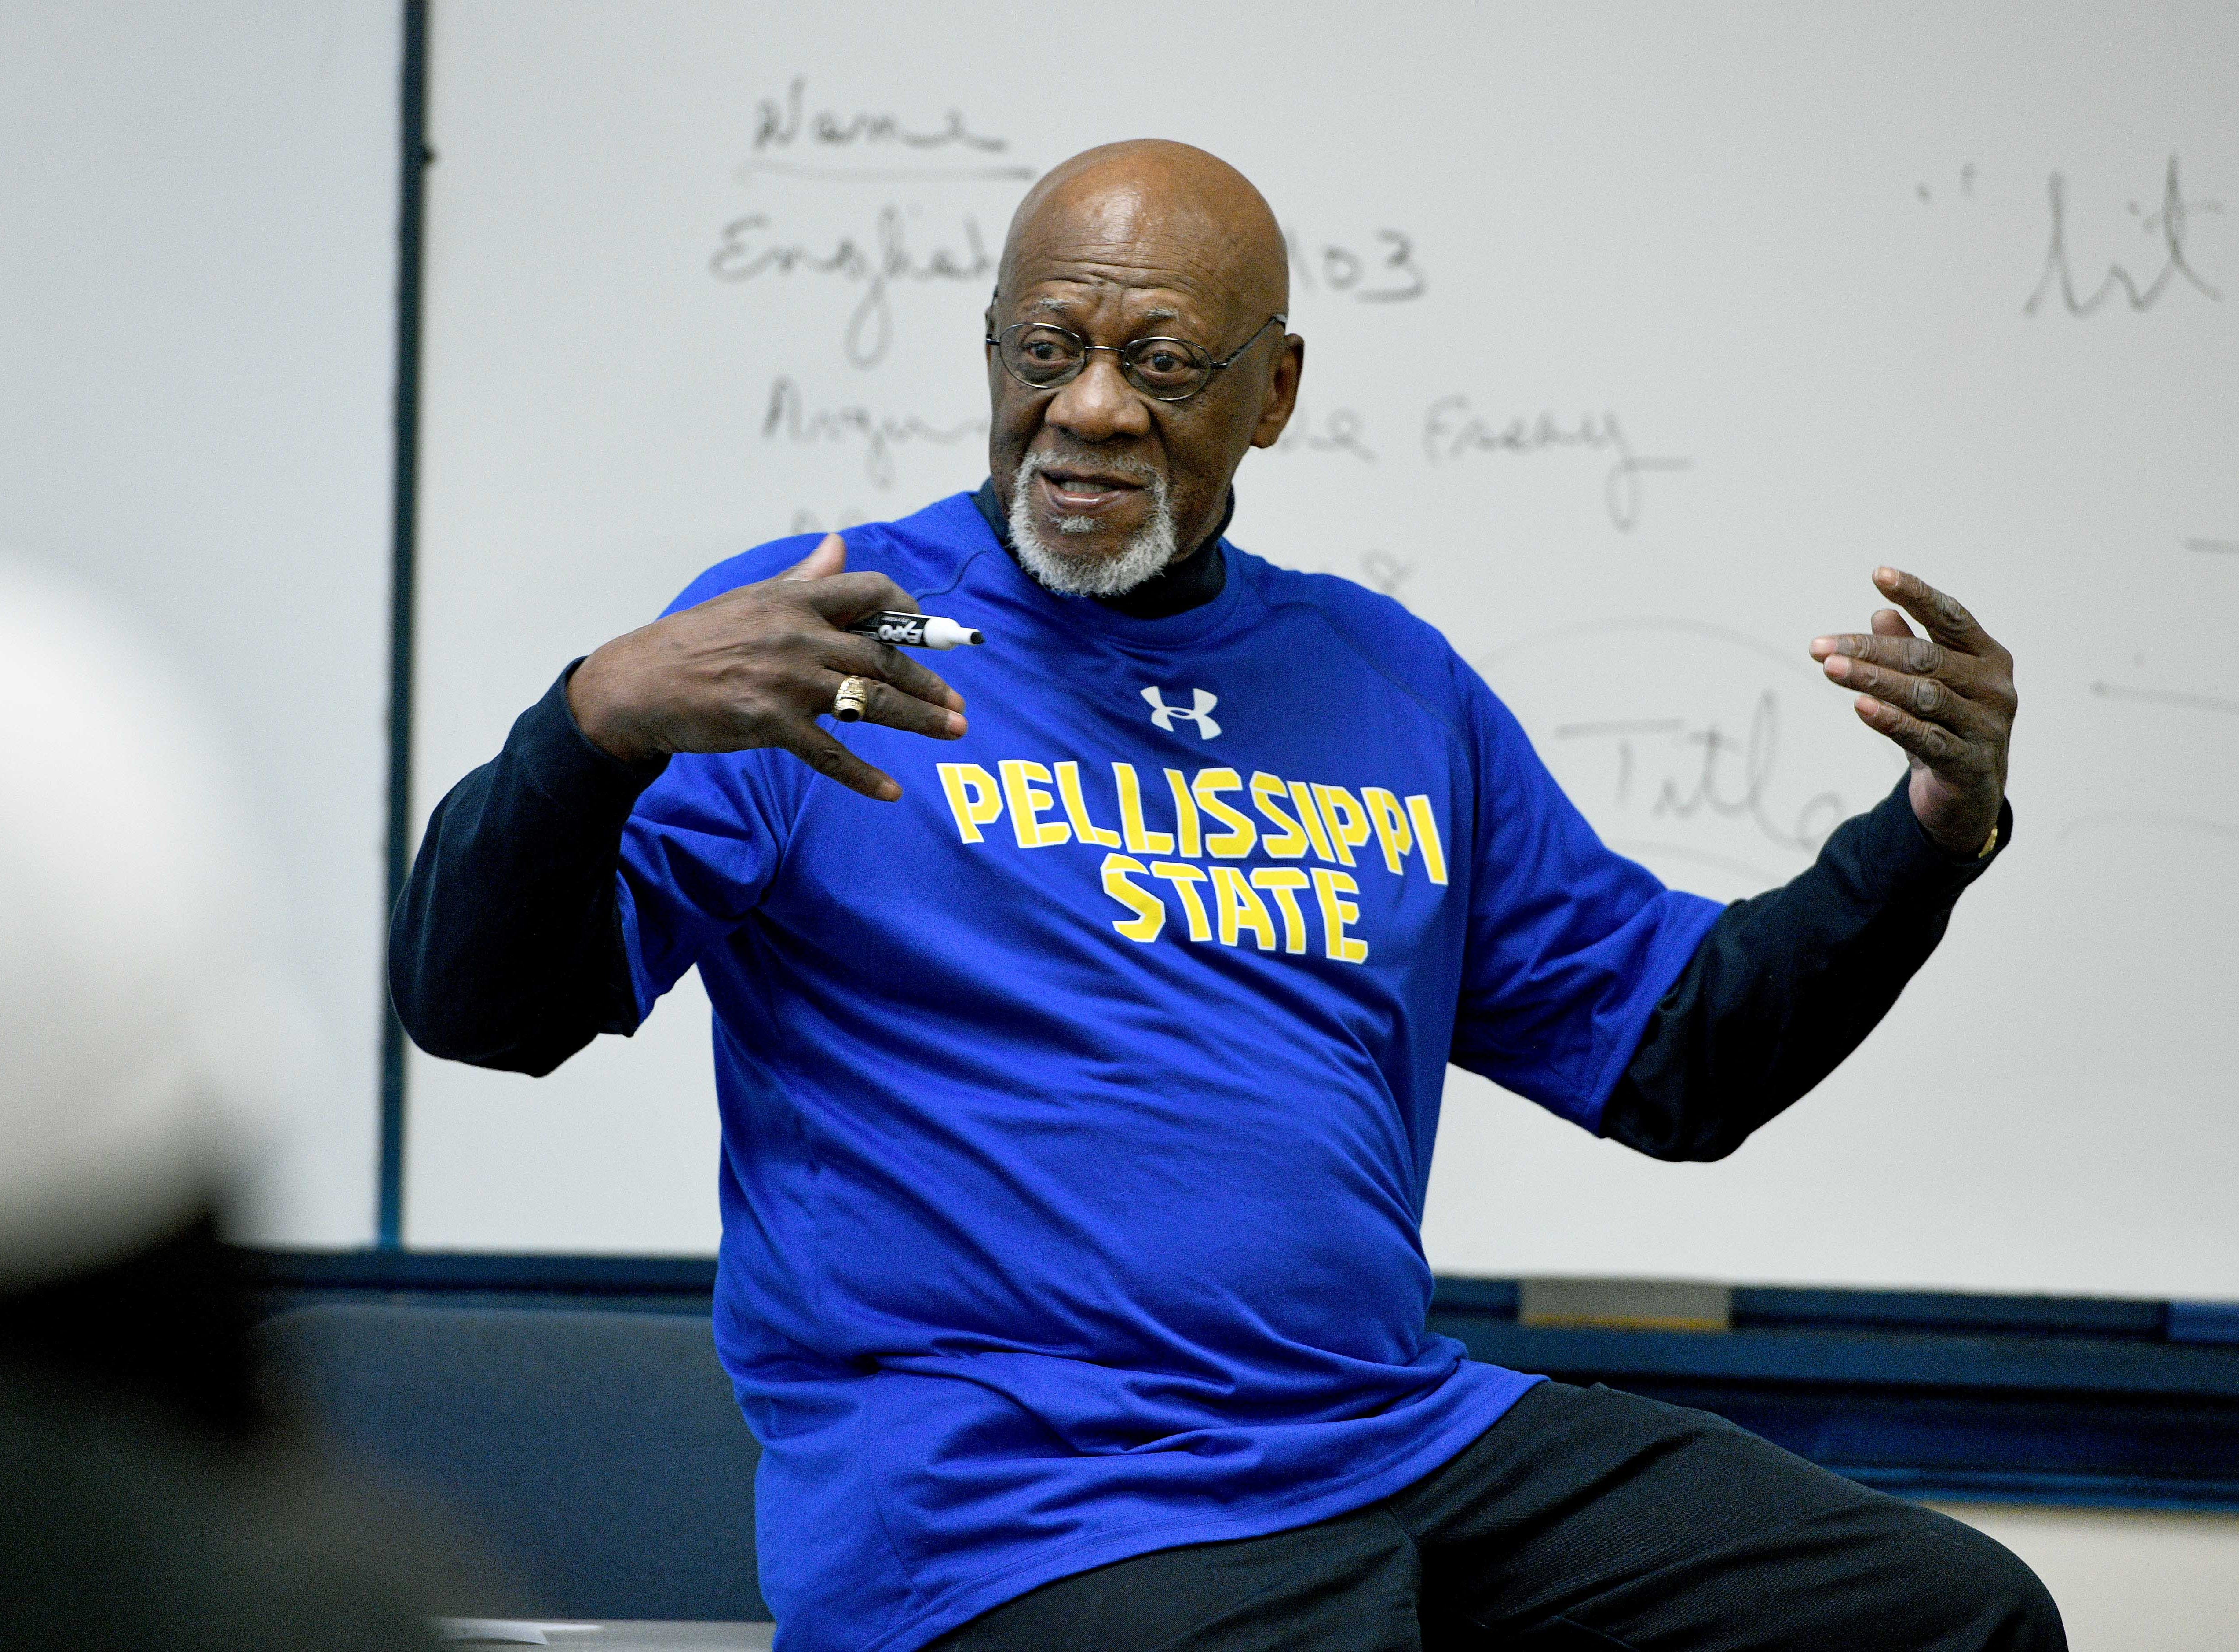 Eighty-three-year-old professor Robert Boyd is retiring from Pellissippi State Community College and teaching one of his last classes Wednesday, April 25, 2018.